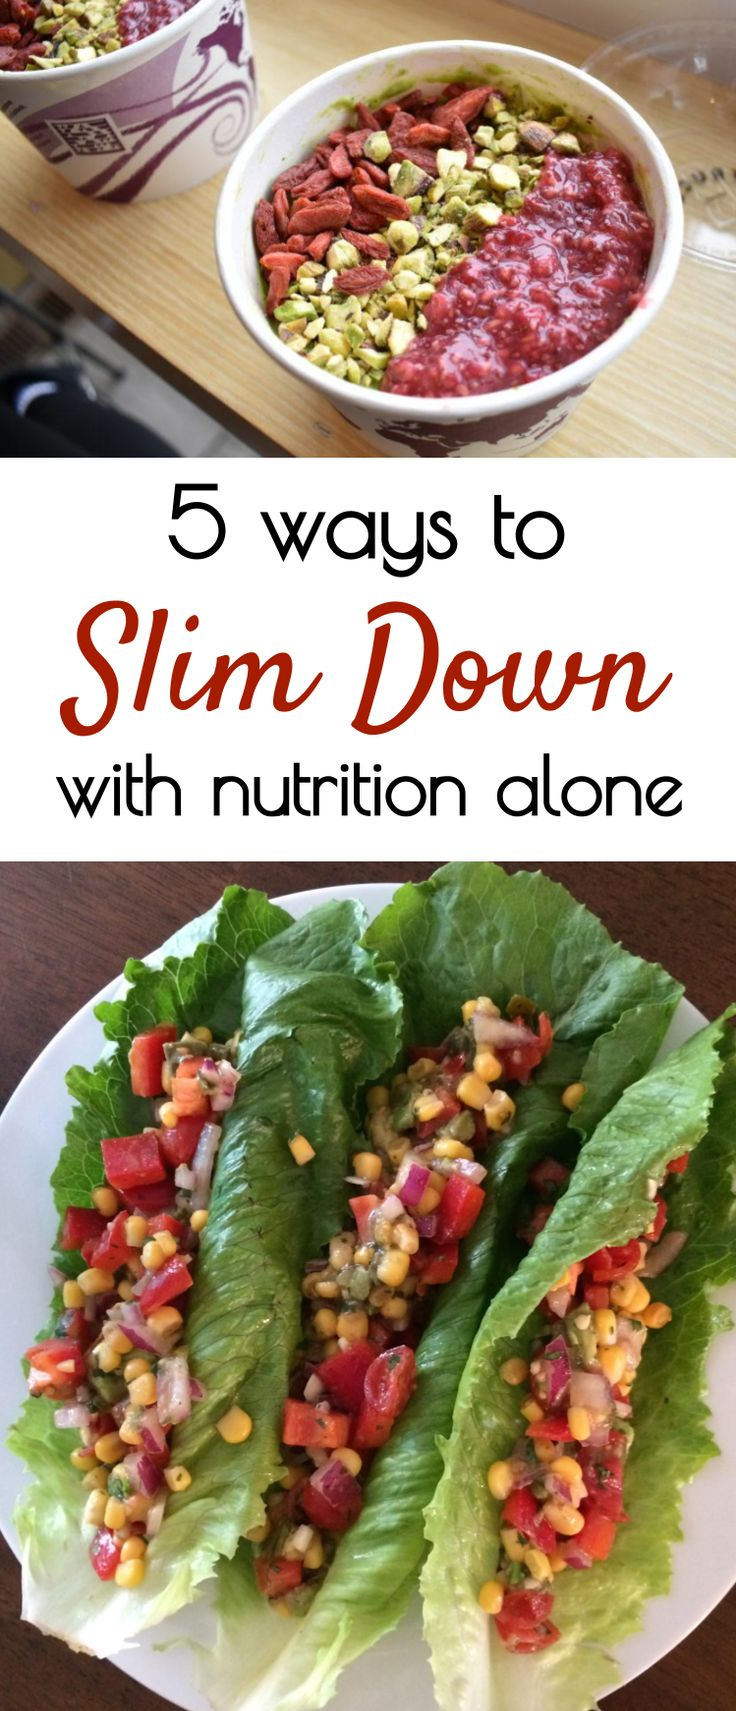 5 ways to slim down with nutrition alone! Plant based nutrition and wholesome food are the best way to lose weight naturally. vegan meal plan, plant based meal plans